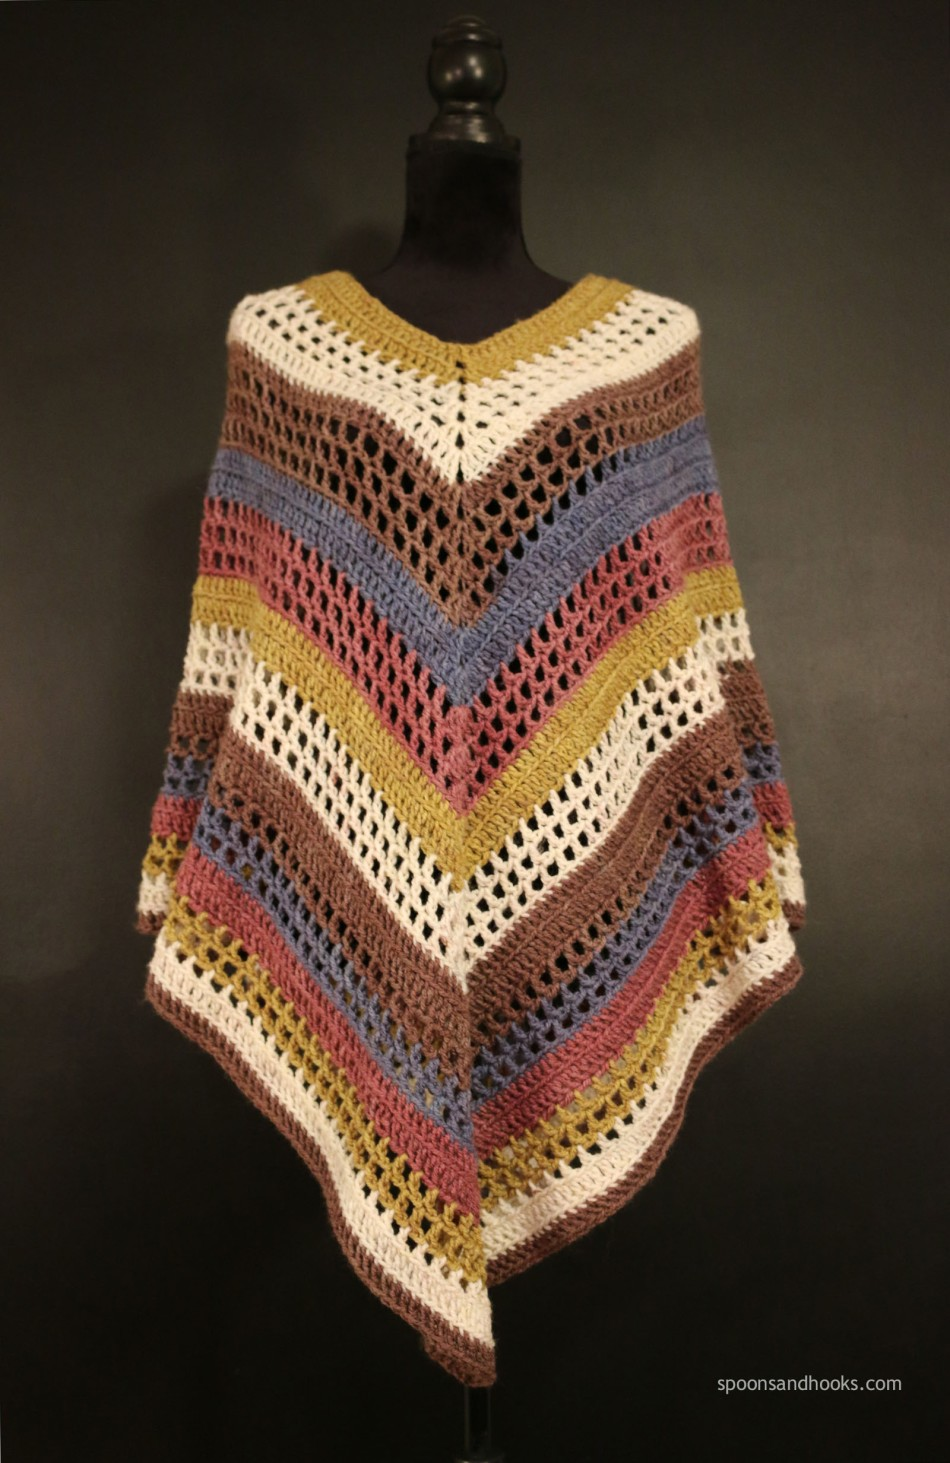 Free crochet pattern: The easiest poncho you'll ever make